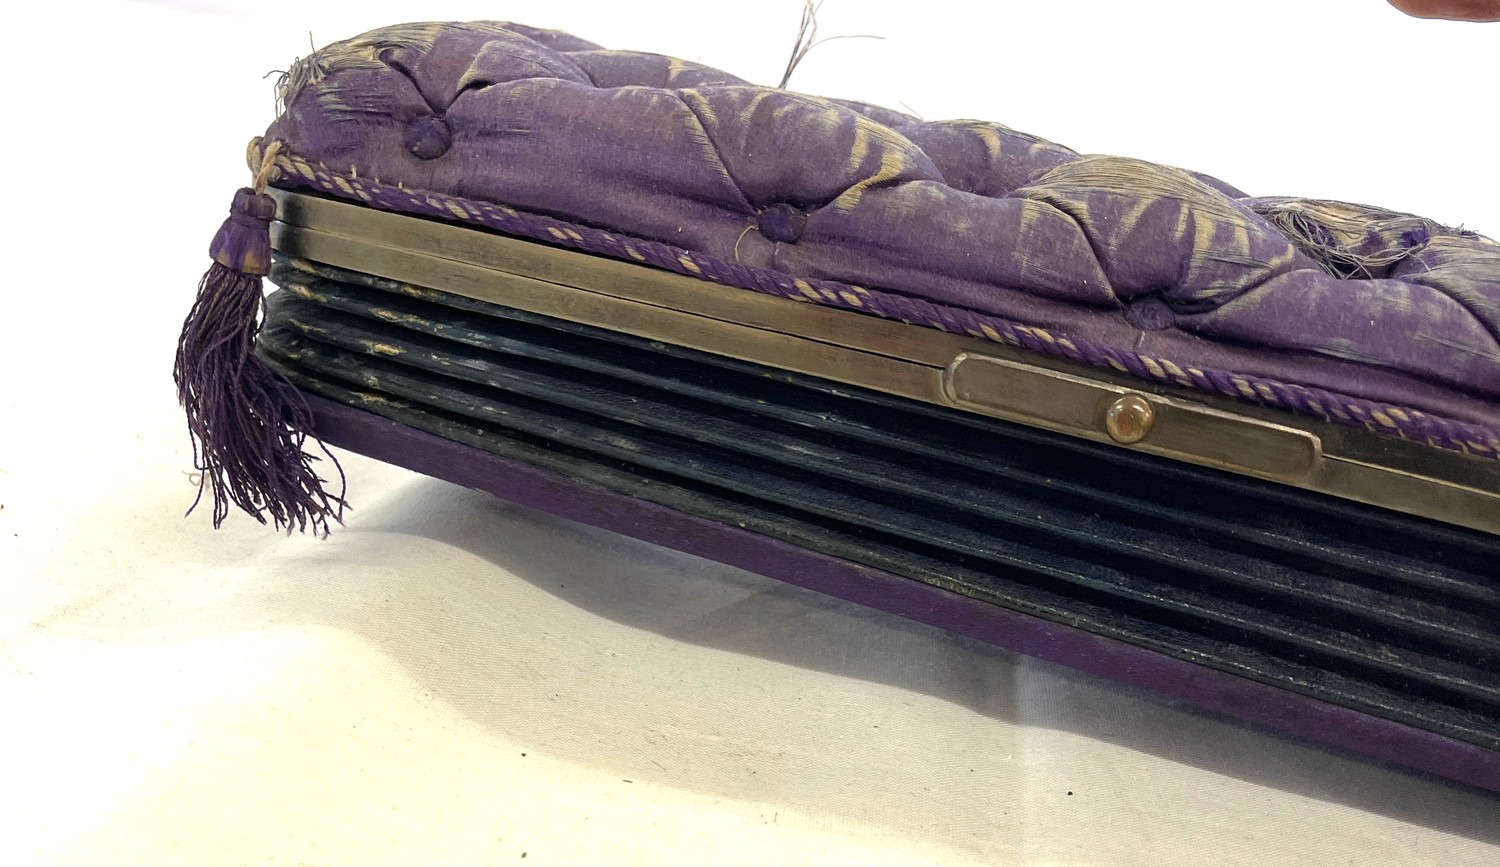 Antique concertina cased set of gloves and glove stretchers - Image 2 of 4